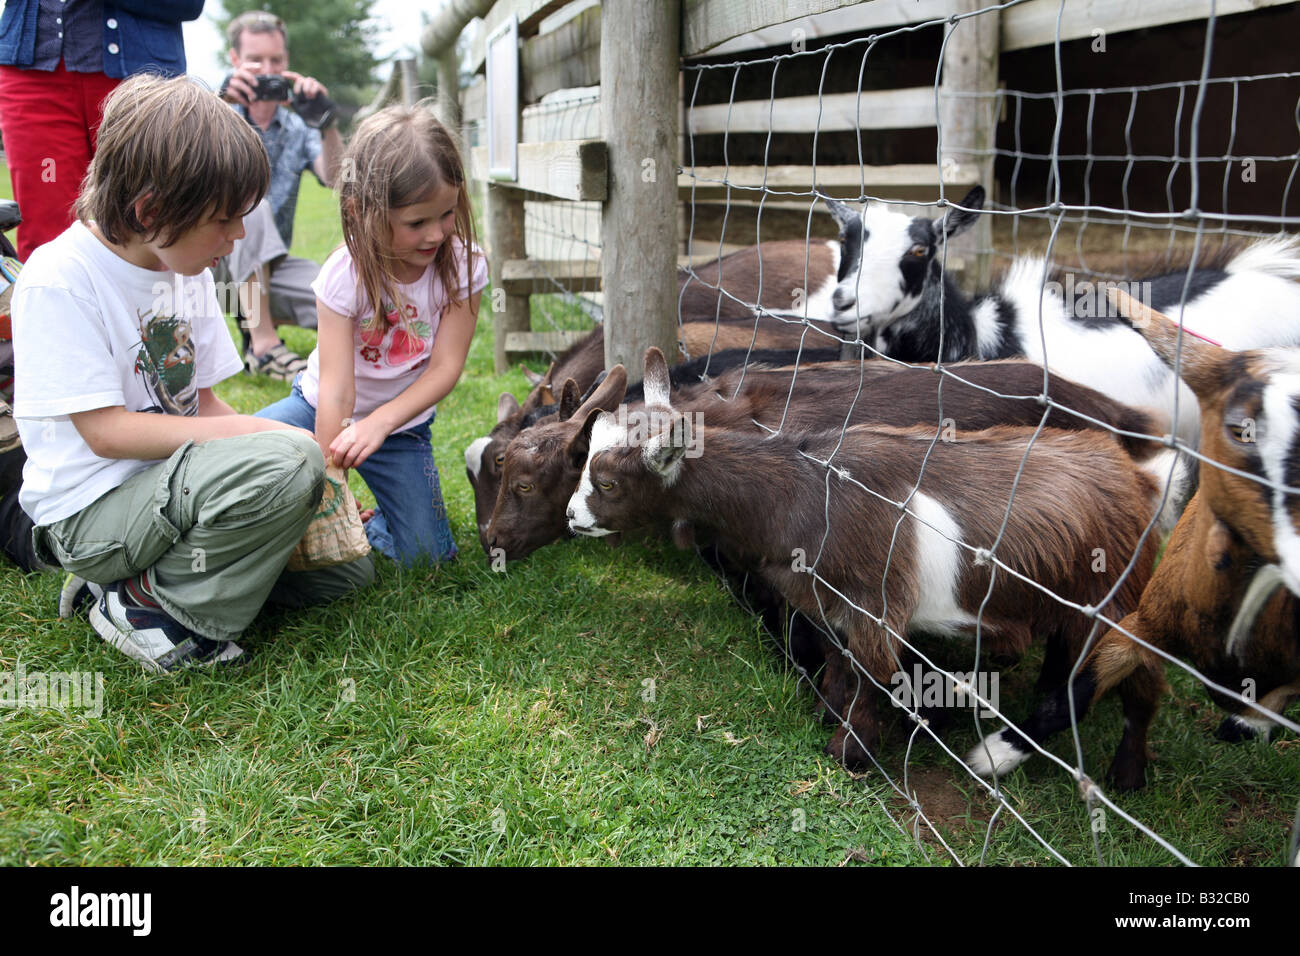 Pic Shows children with goats on Odds Farm - Stock Image